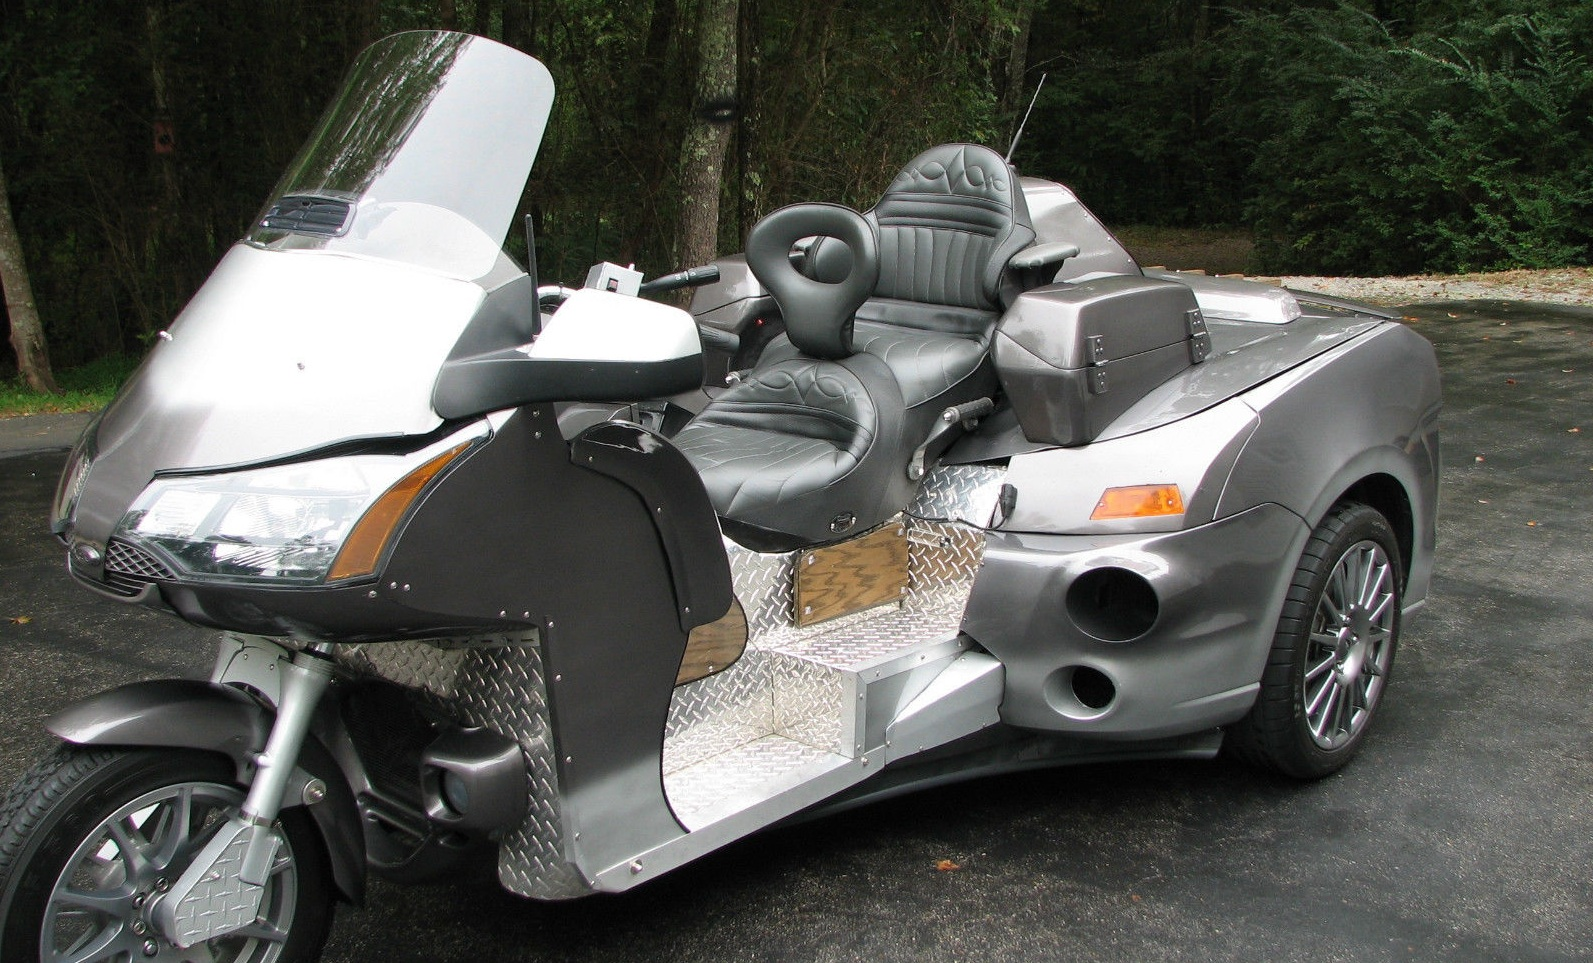 bizarre ford focus honda goldwing trike sells for 9 100 the news wheel. Black Bedroom Furniture Sets. Home Design Ideas